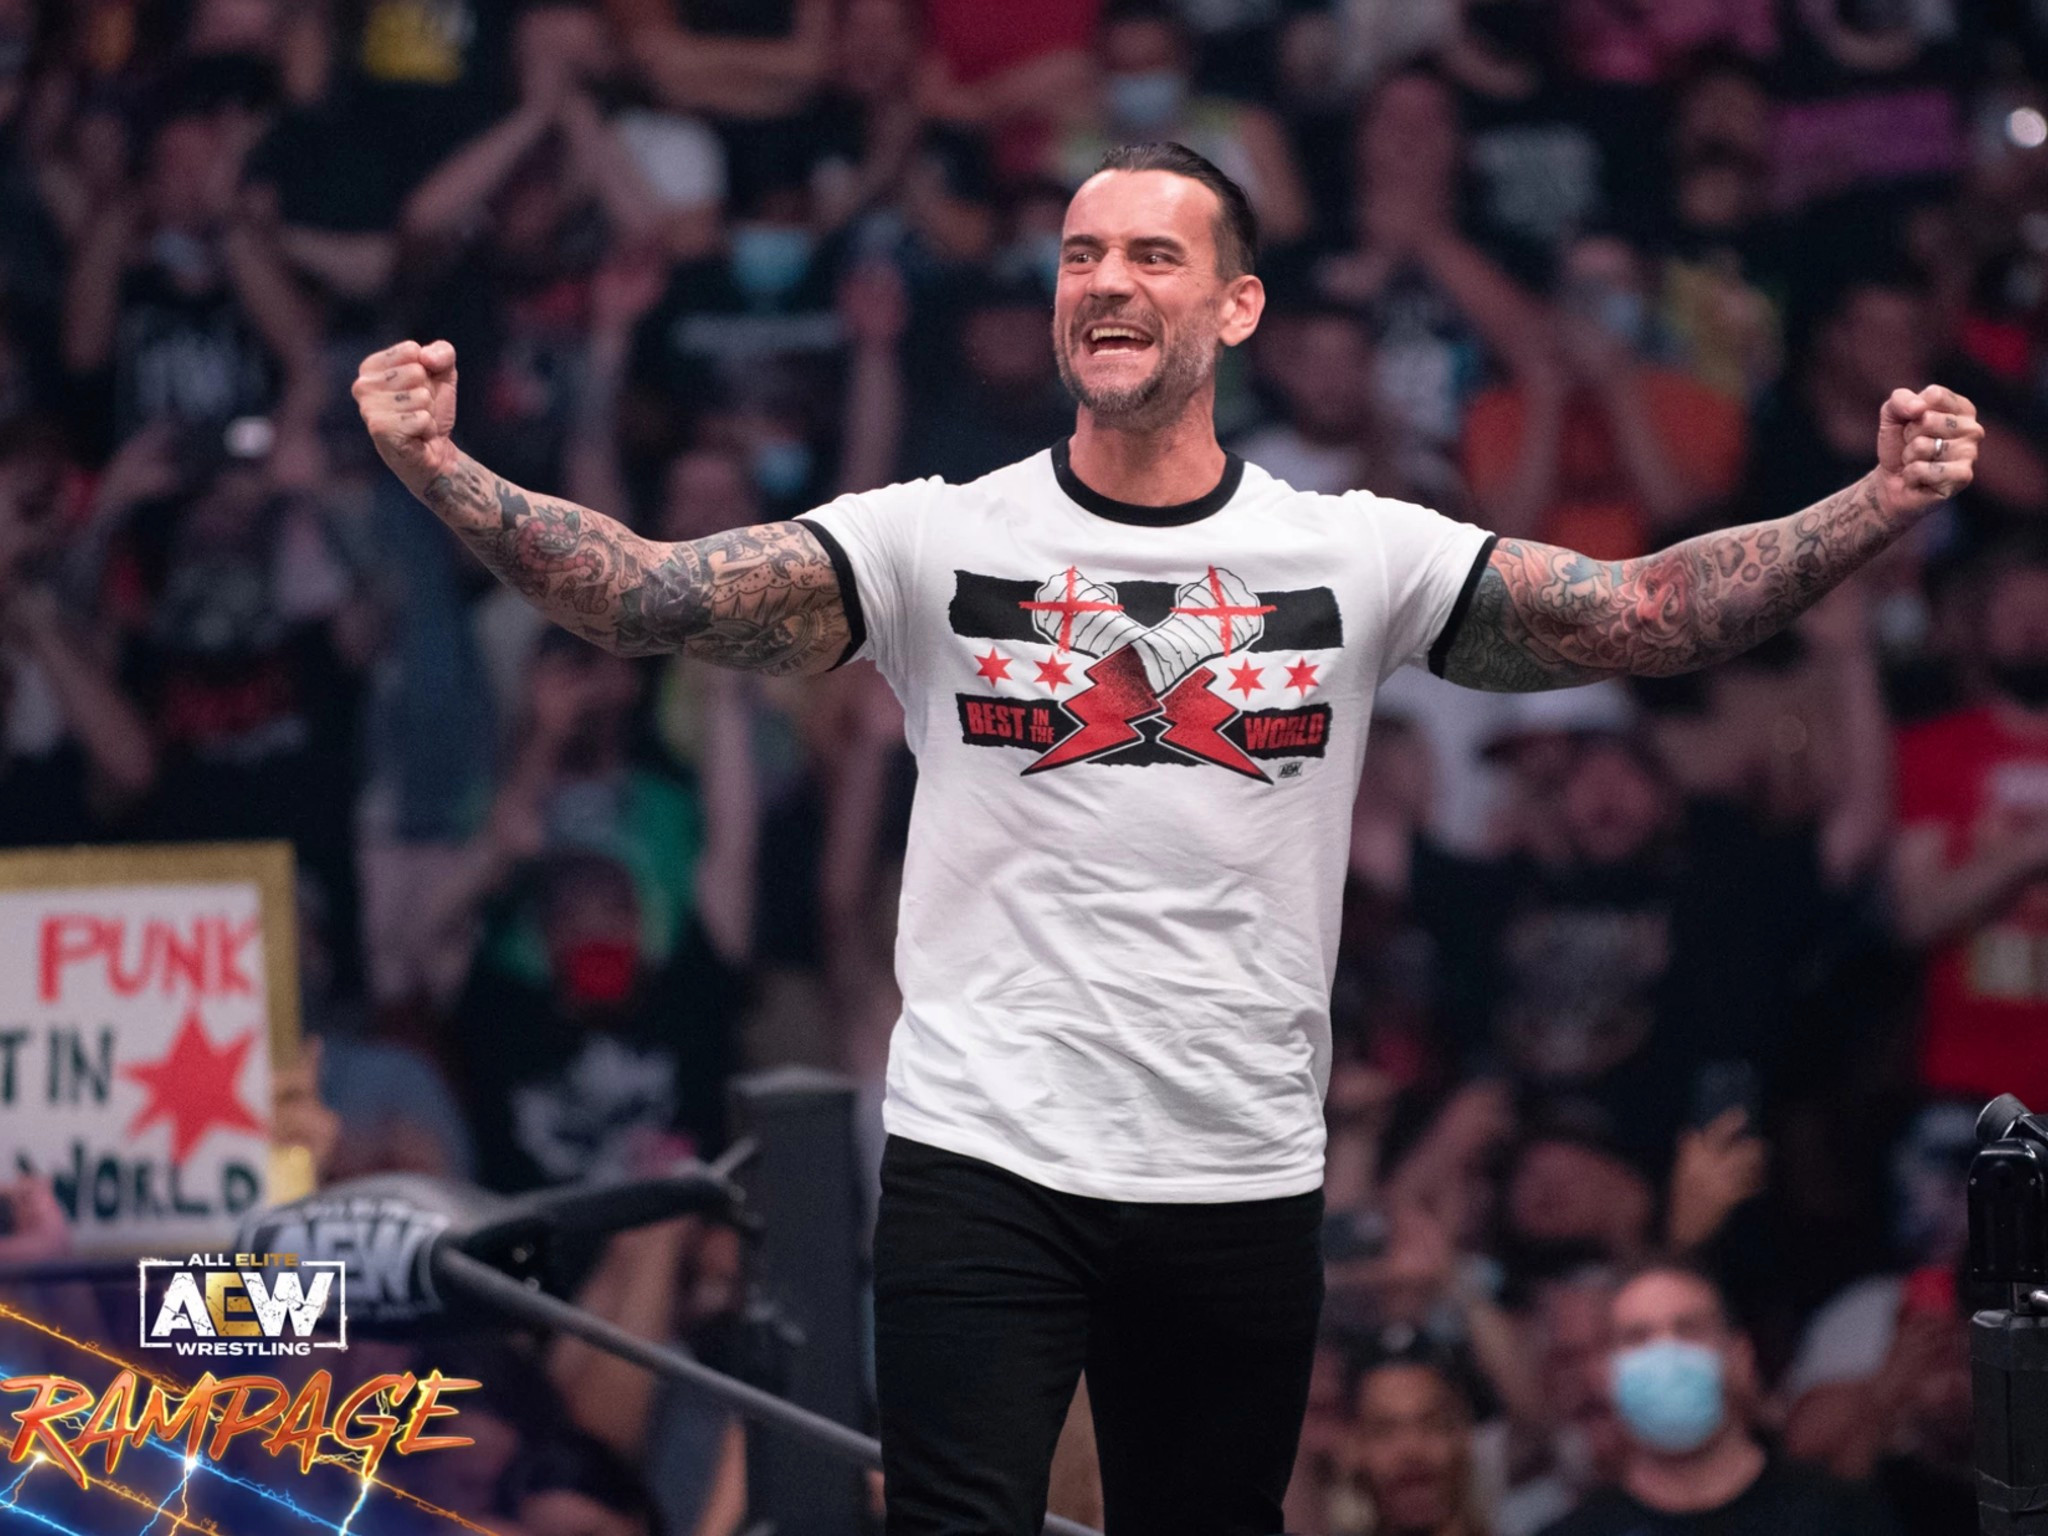 Straight edge star CM Punk hilariously reacts to AEW fan offering him a beer on Rampage